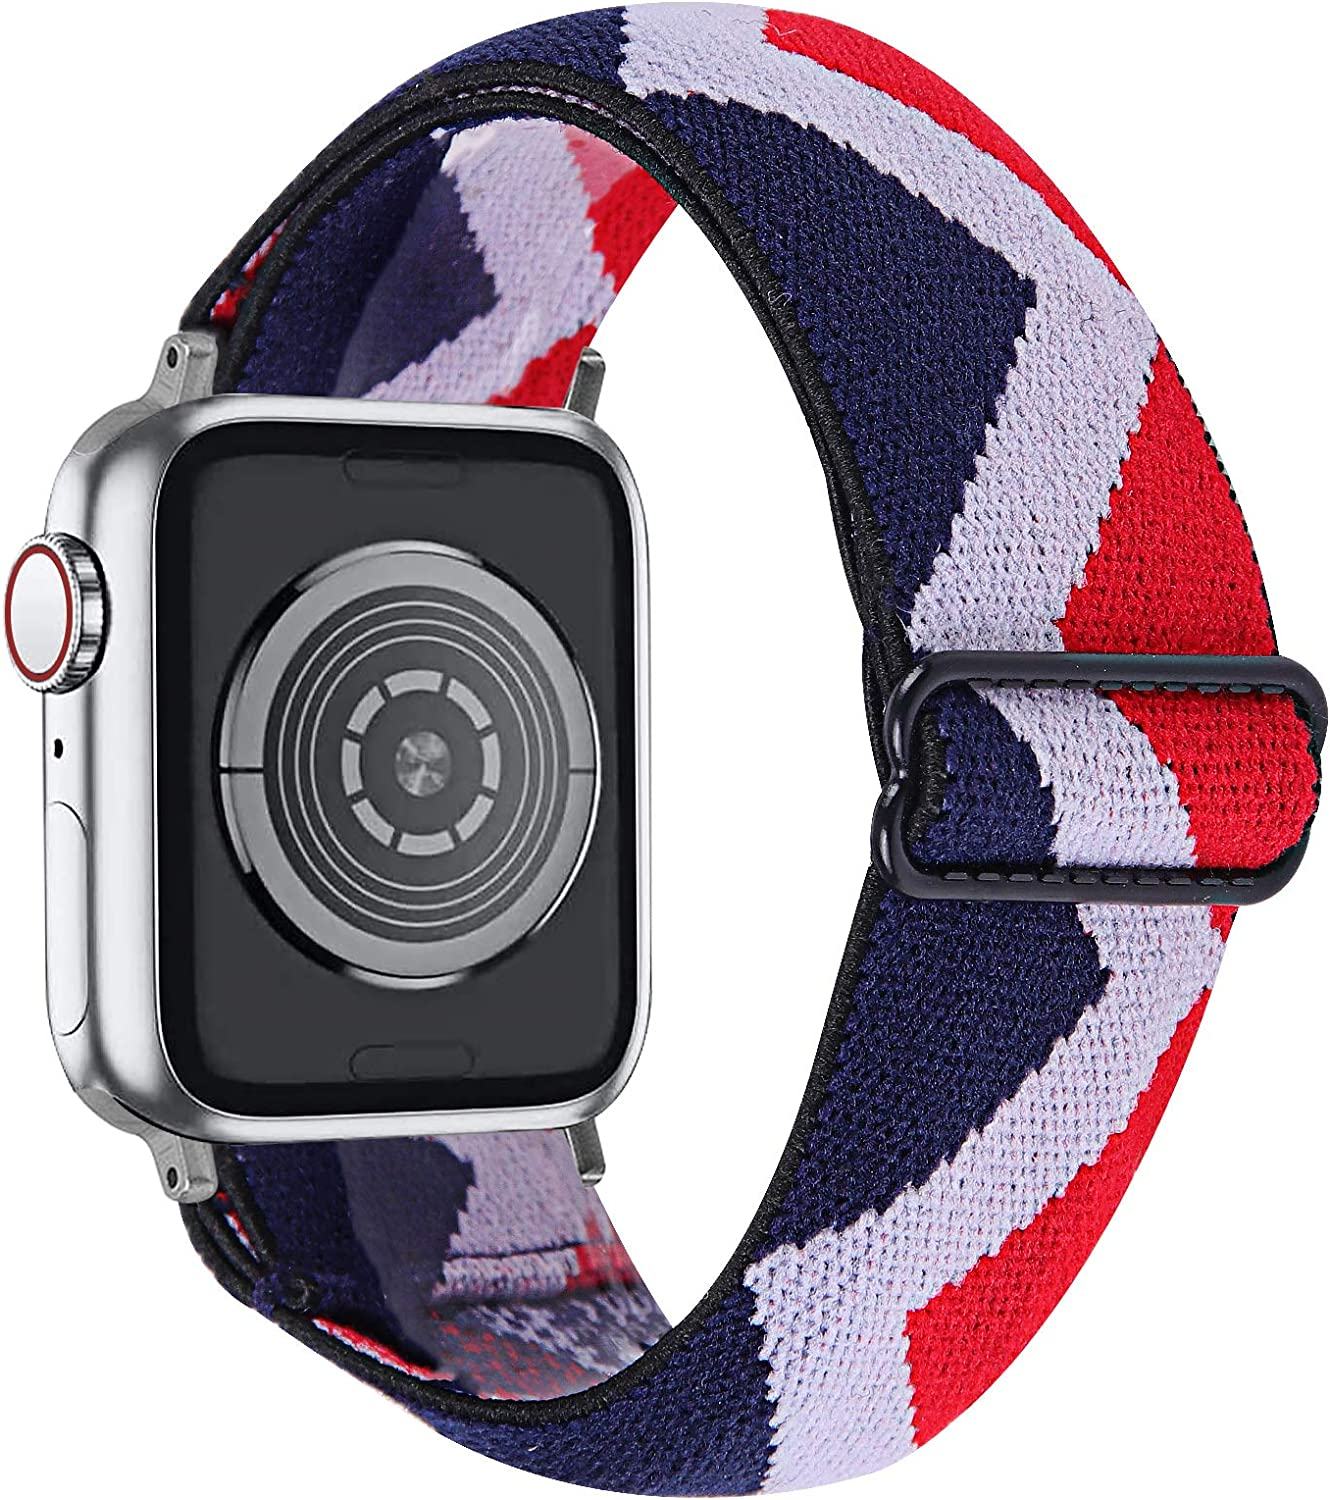 MEFEO Adjustable Elastic Bands Compatible with Apple Watch Bands 38mm 40mm 42mm 44mm, Soft Stretch Bracelet Replacement for iWatch Series 6/5/4/3/2/1&SE Women Girls (Red White Blue, 38mm/40mm)